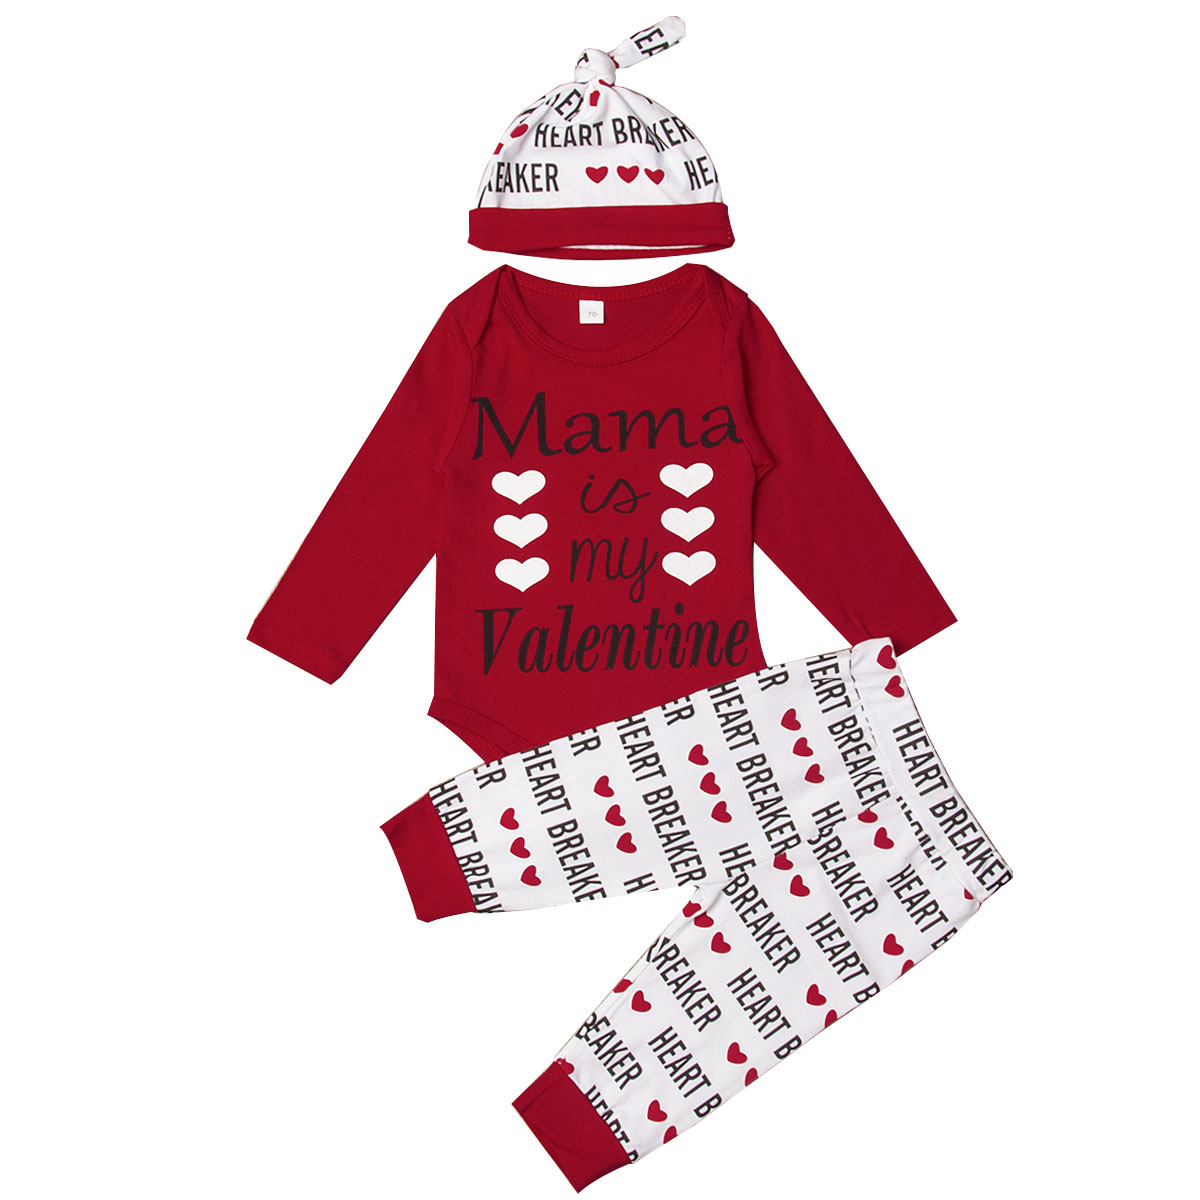 Baby Boys Clothing Sets,3PCS Newborn Boys Long Sleeve Letter T-Shirt Tops+Red Buffalo Plaid Pants+Hat Outfits Clothes for 1st Birthday